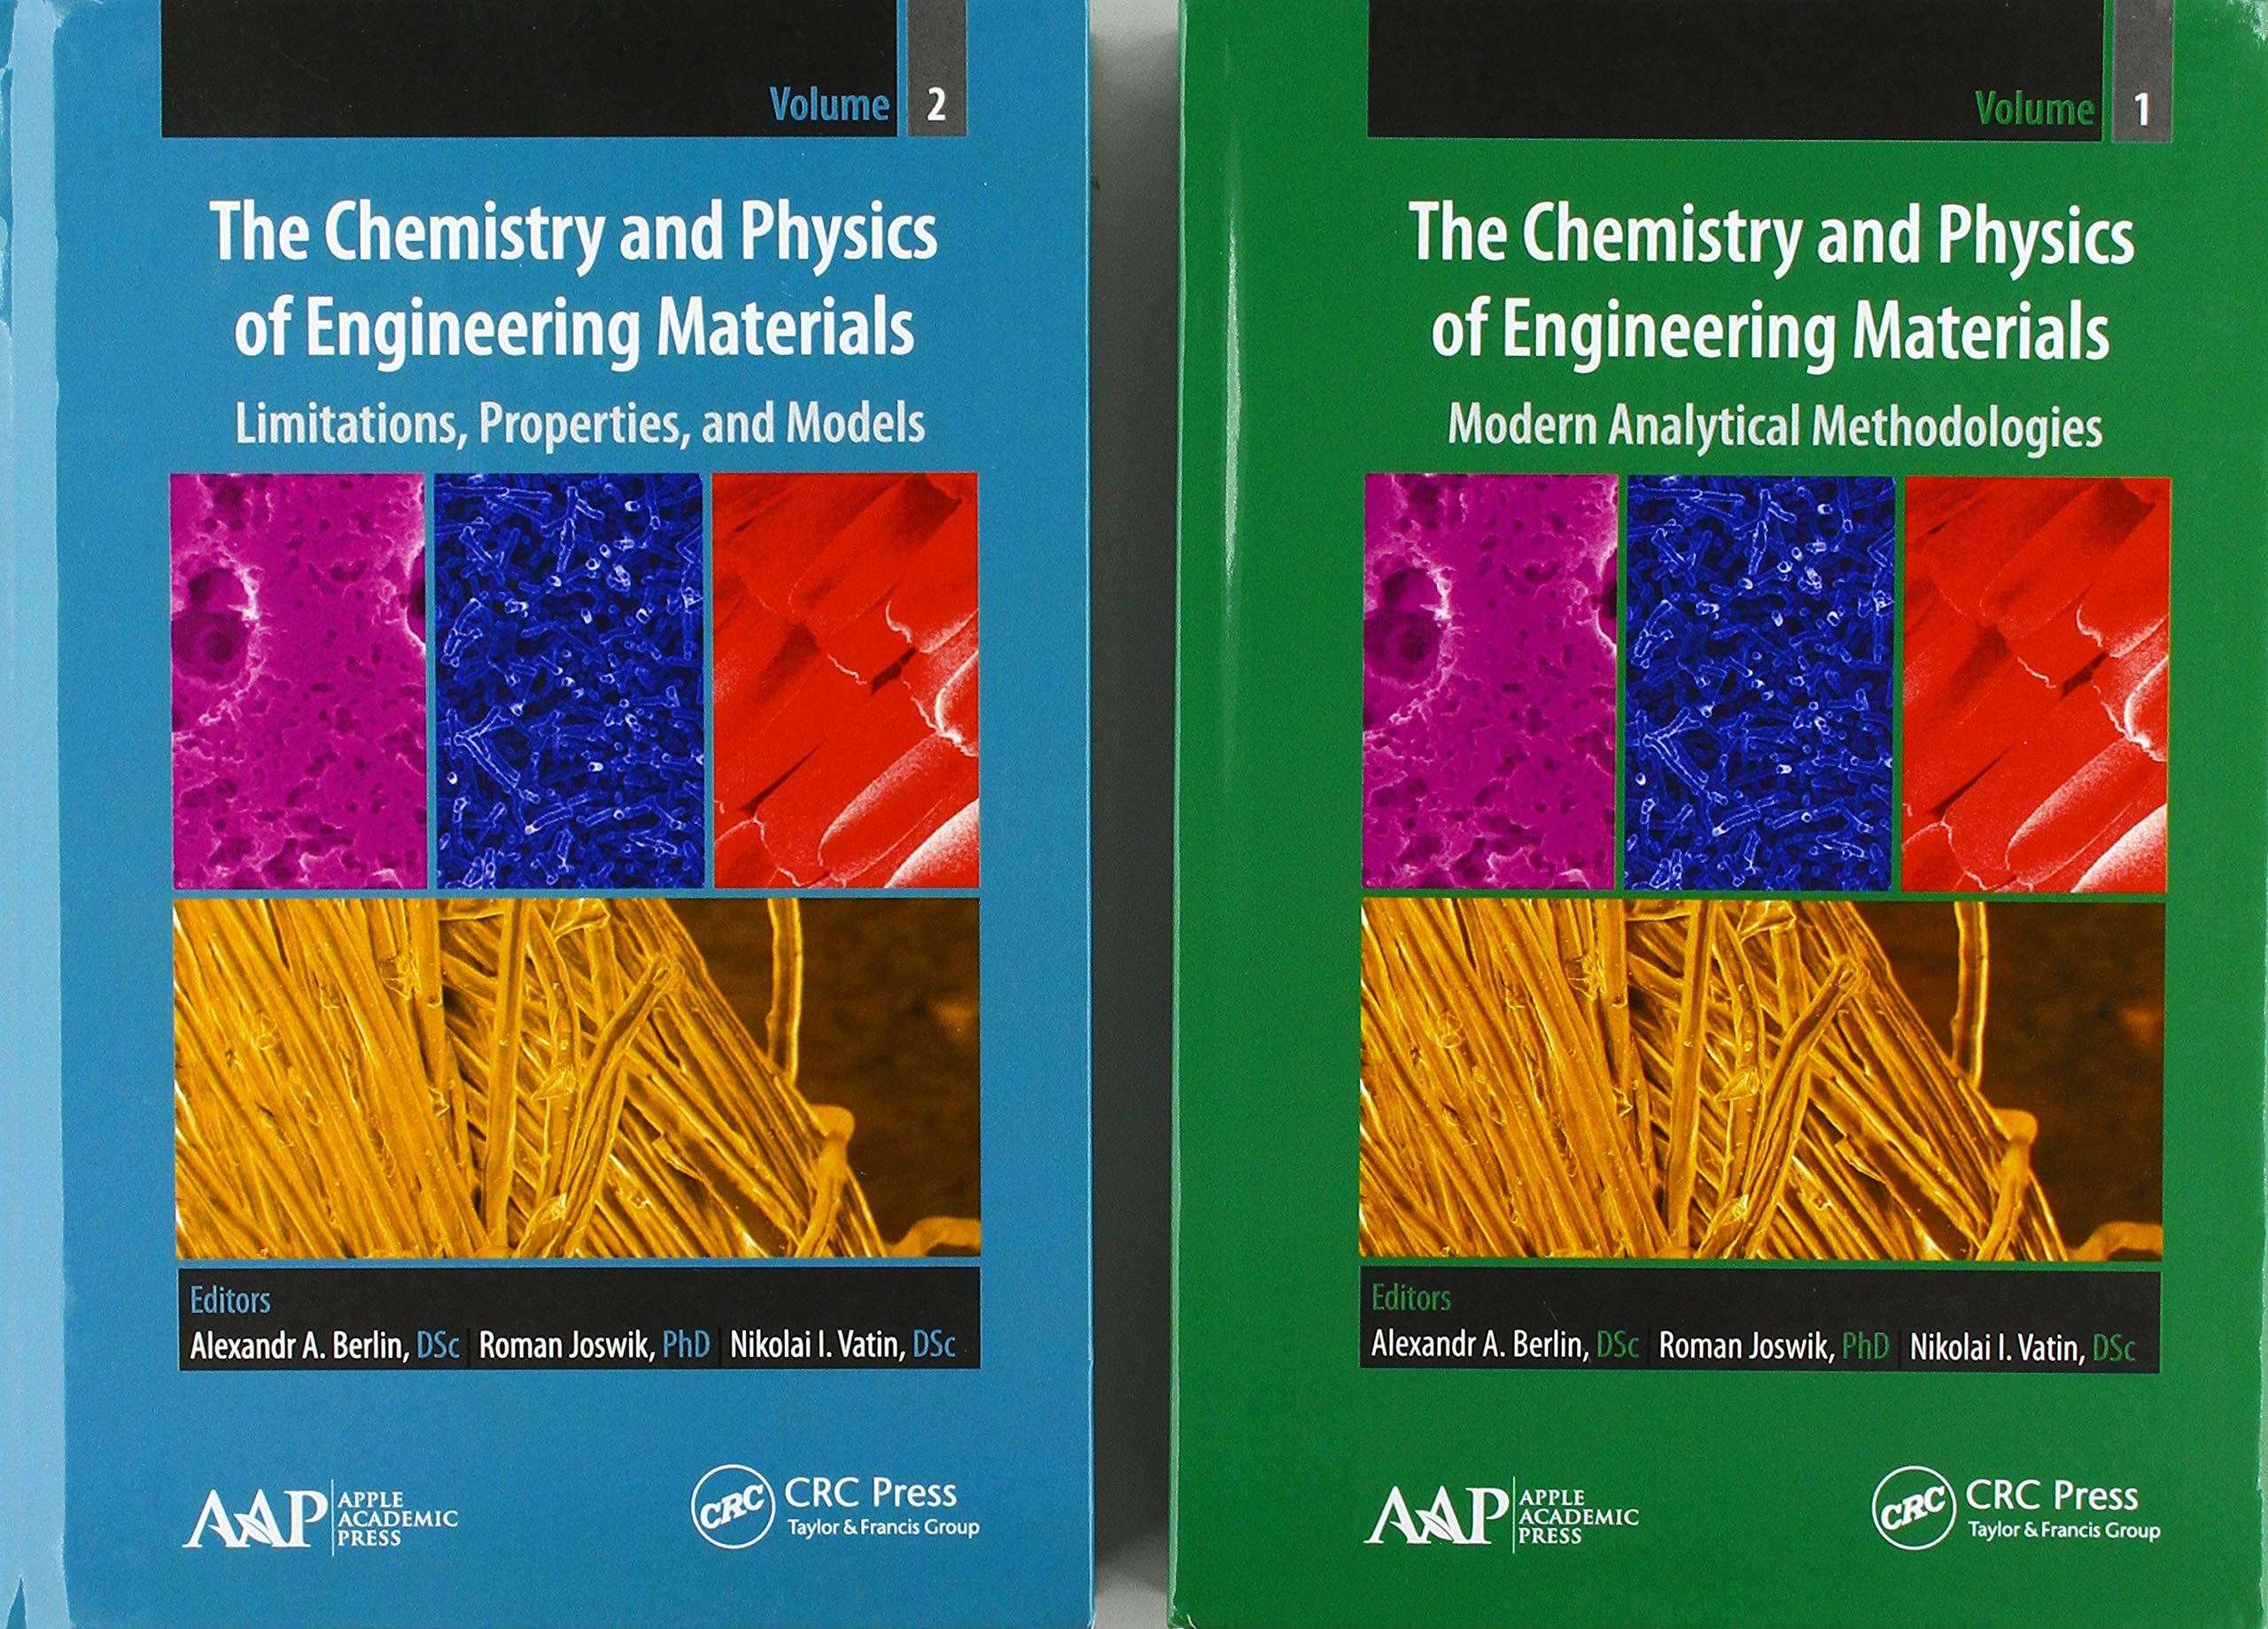 The Chemistry and Physics of Engineering Materials. Volume 2, Limitations, Properties, and Models